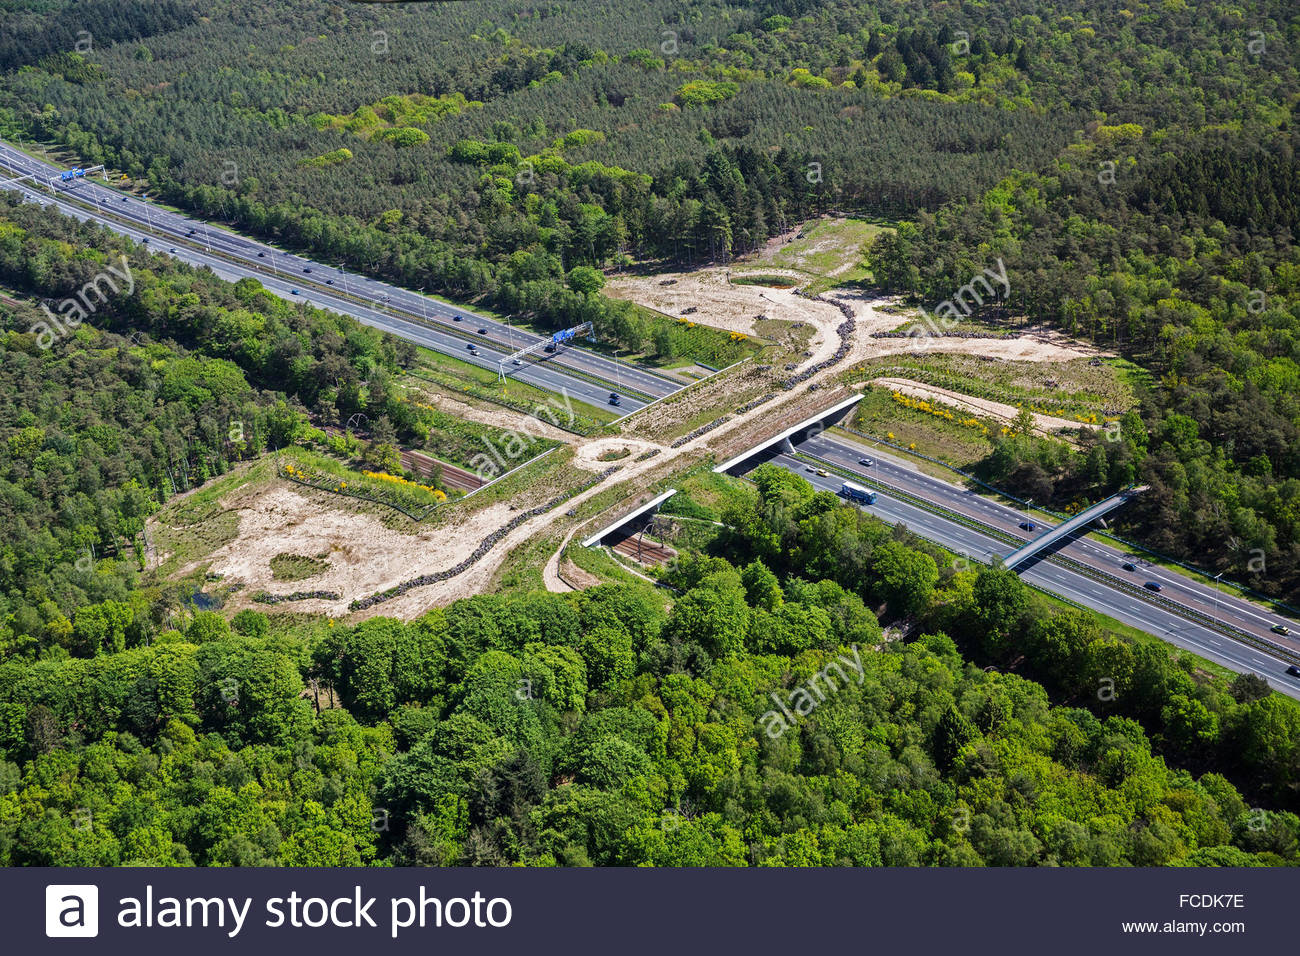 pays bas hilversum ecoduct sur autoroute a27 aerial banque d 39 images photo stock 93728194. Black Bedroom Furniture Sets. Home Design Ideas